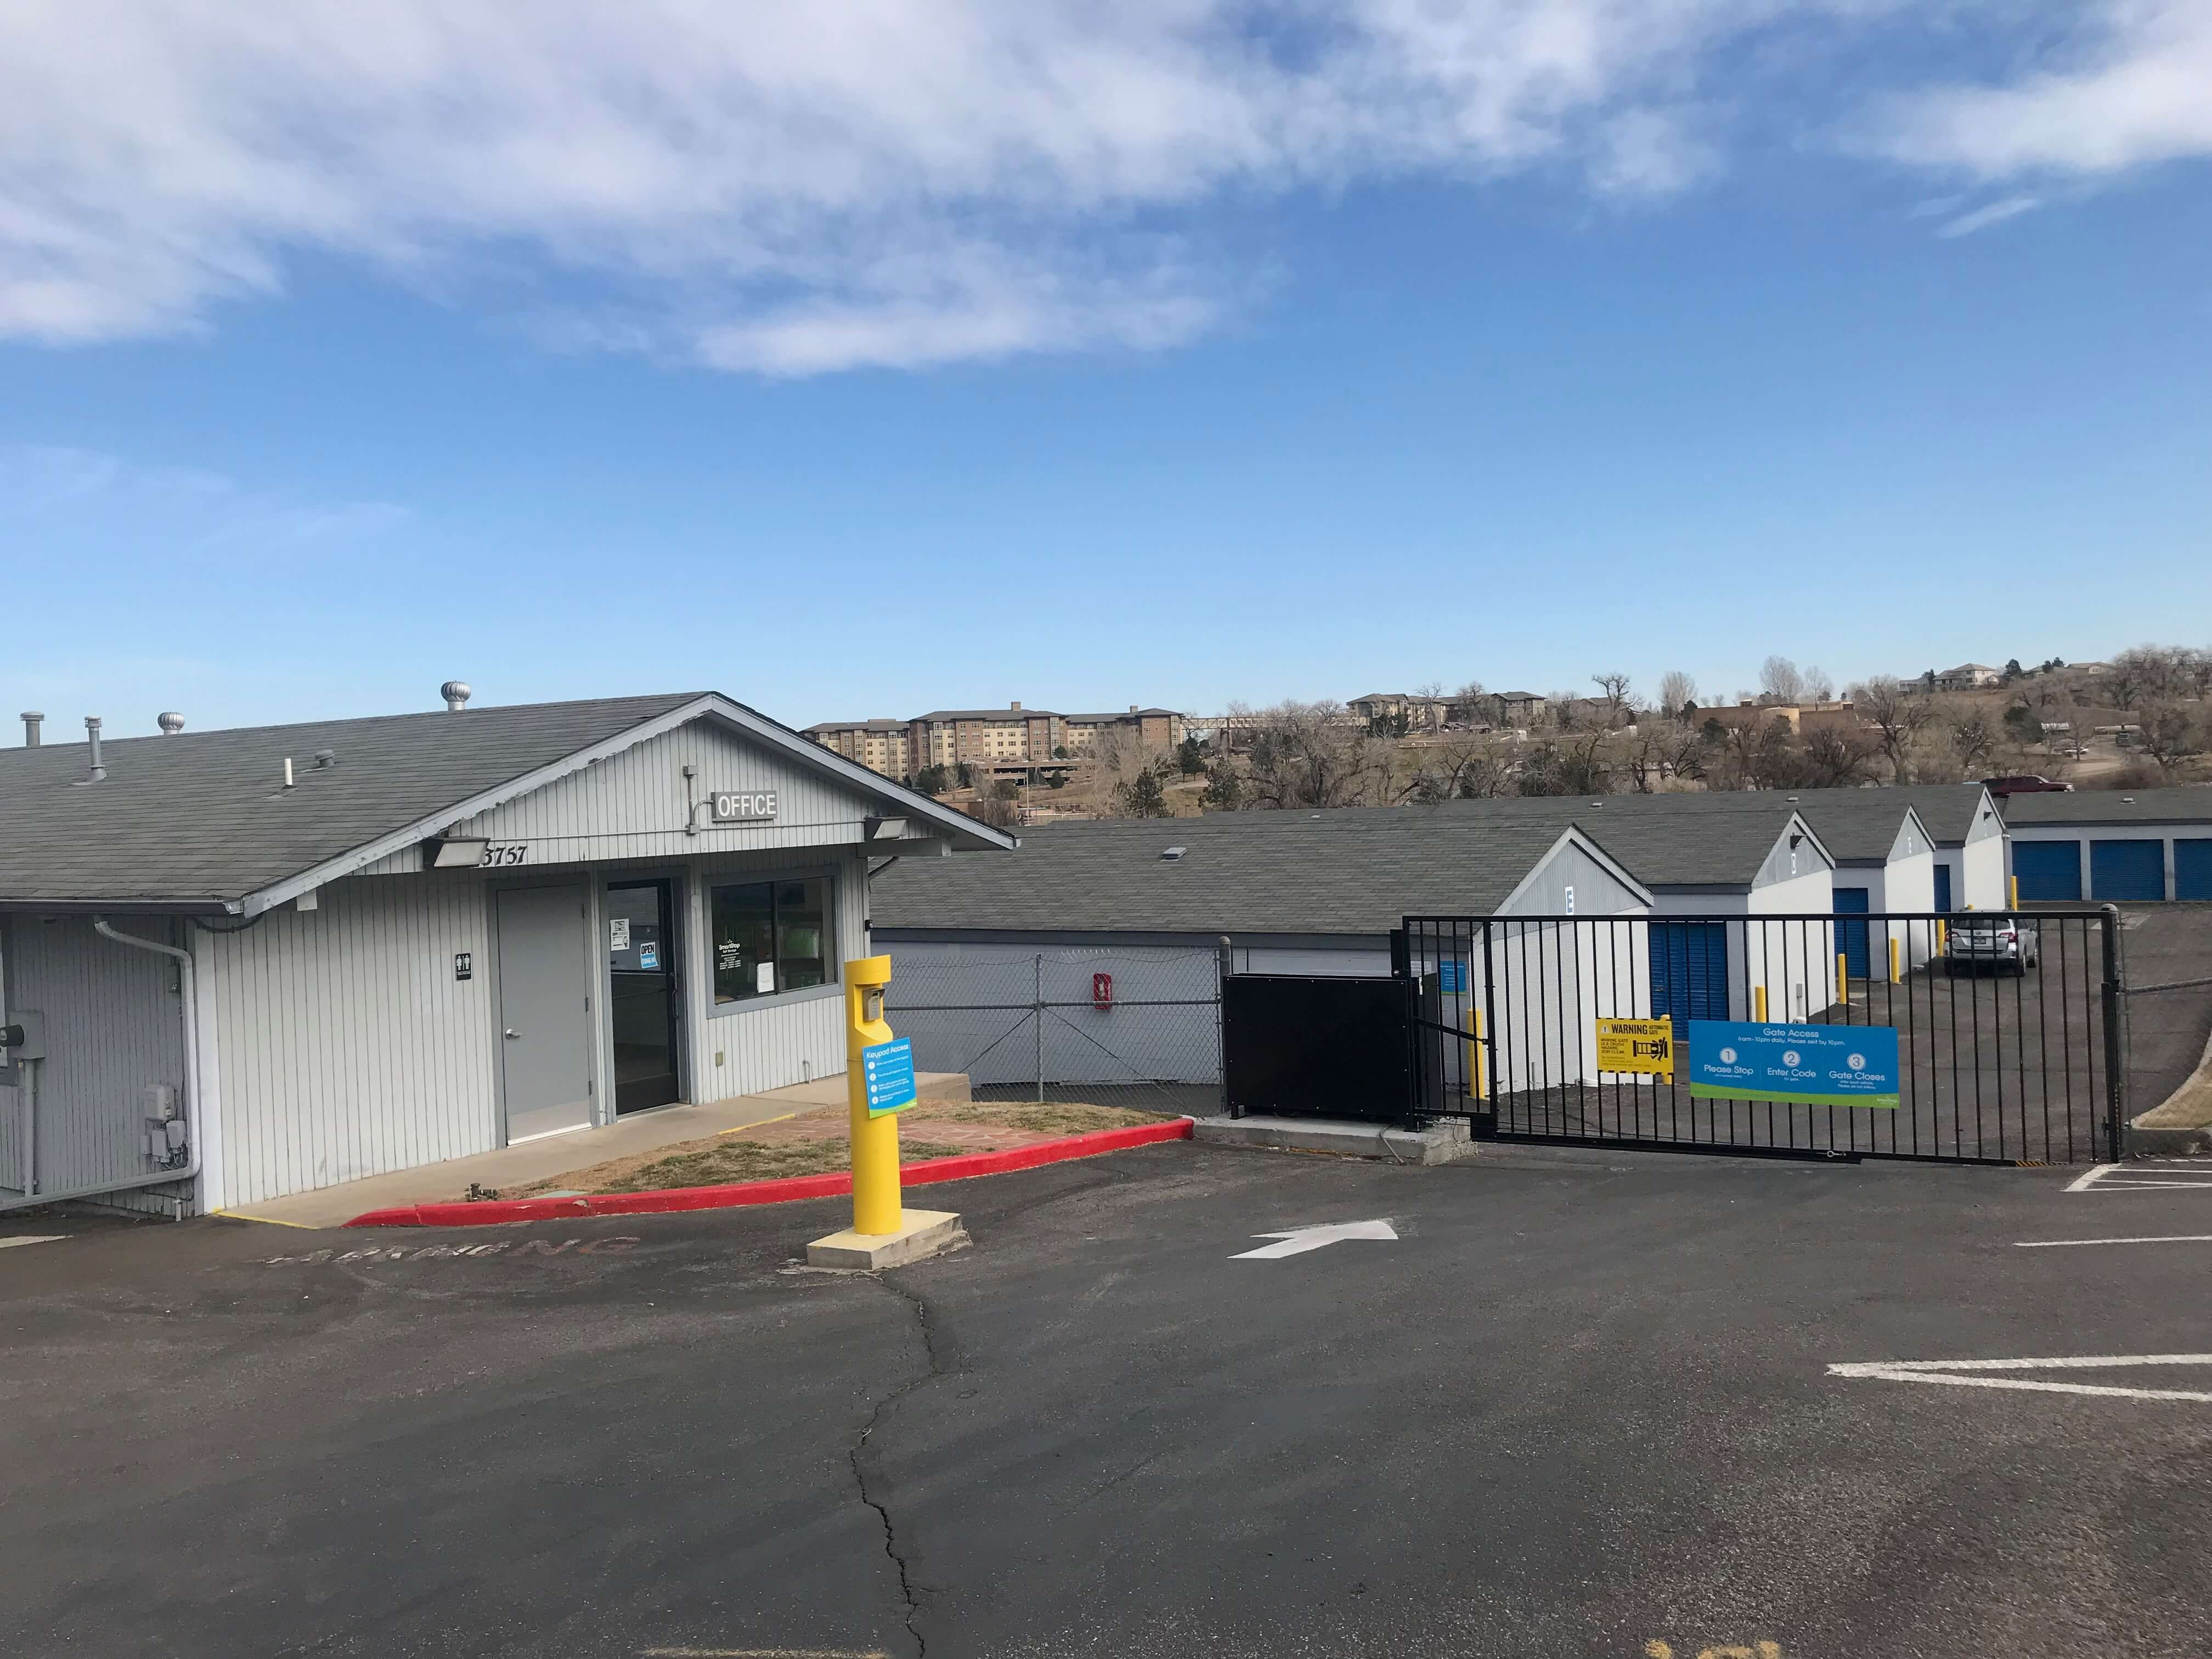 Self Storage Property View in Littleton, CO